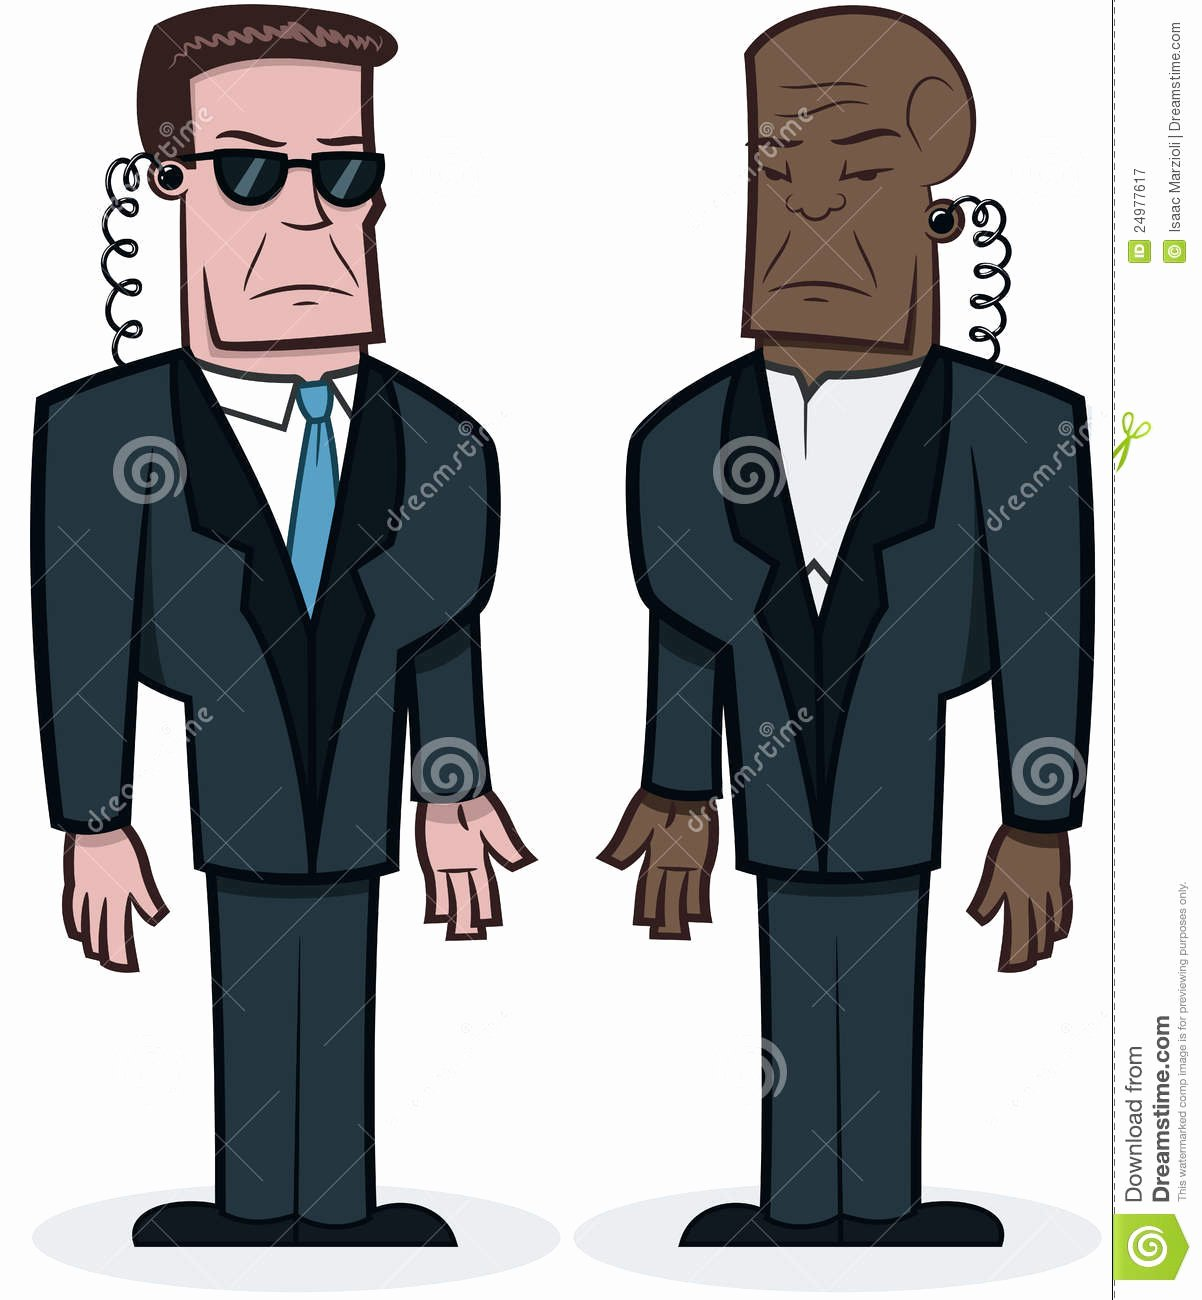 Americanization is tough On Macho Fresh tough Bodyguards Royalty Free Stock Graphy Image